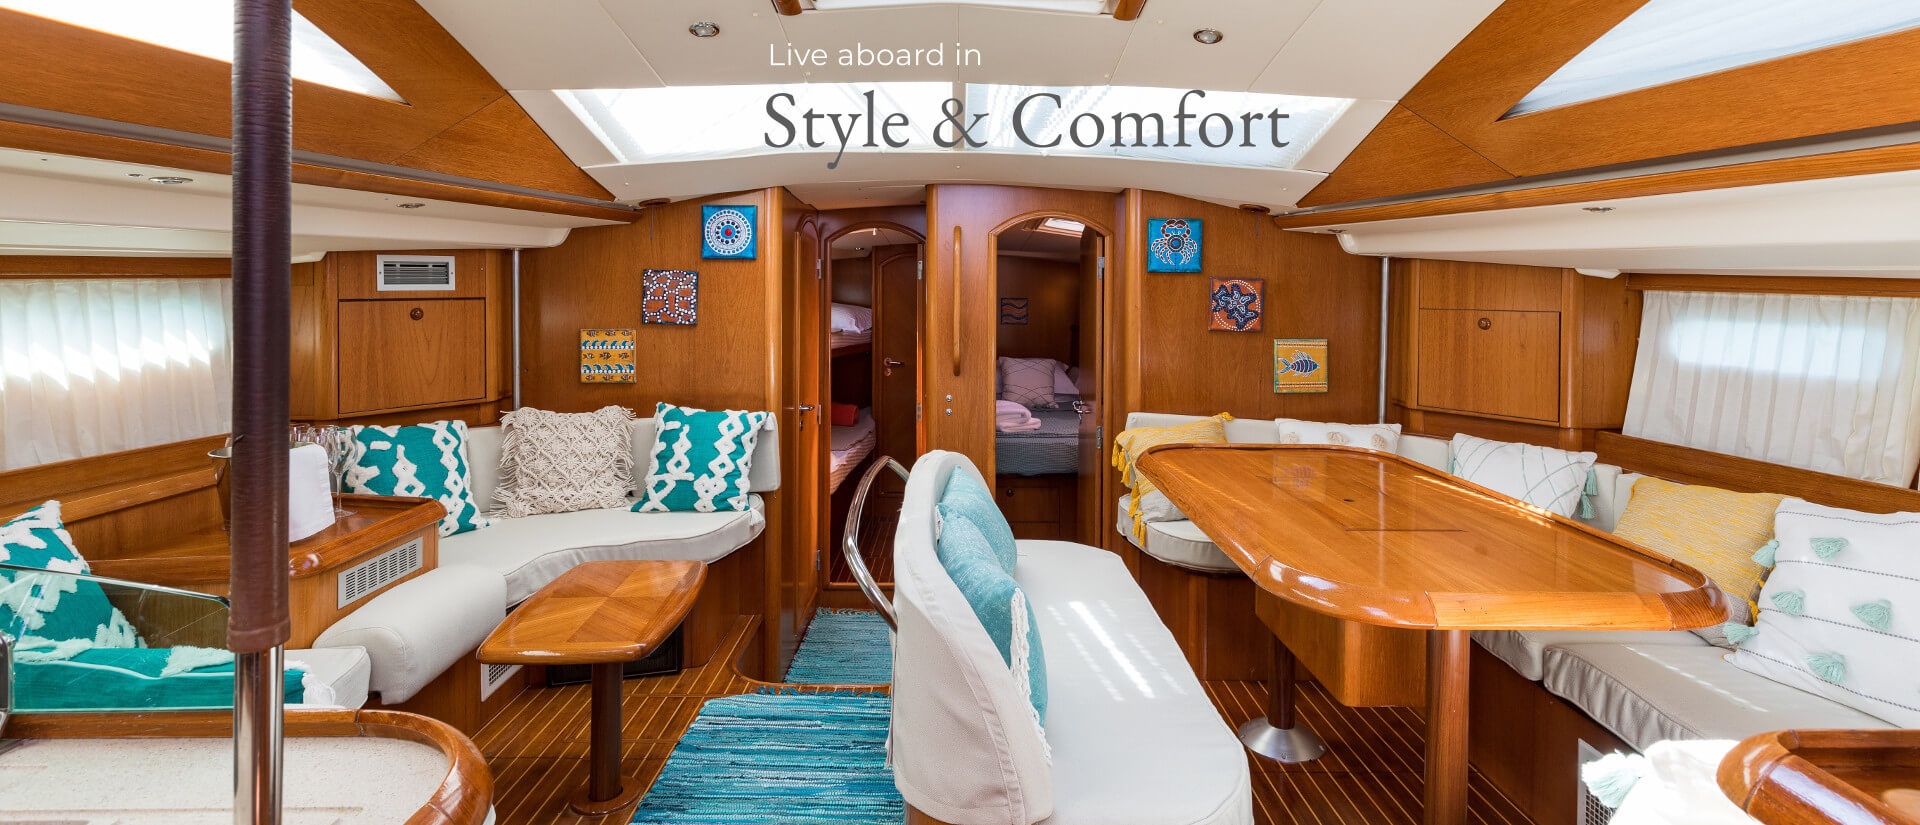 Live aboard in style and comfort